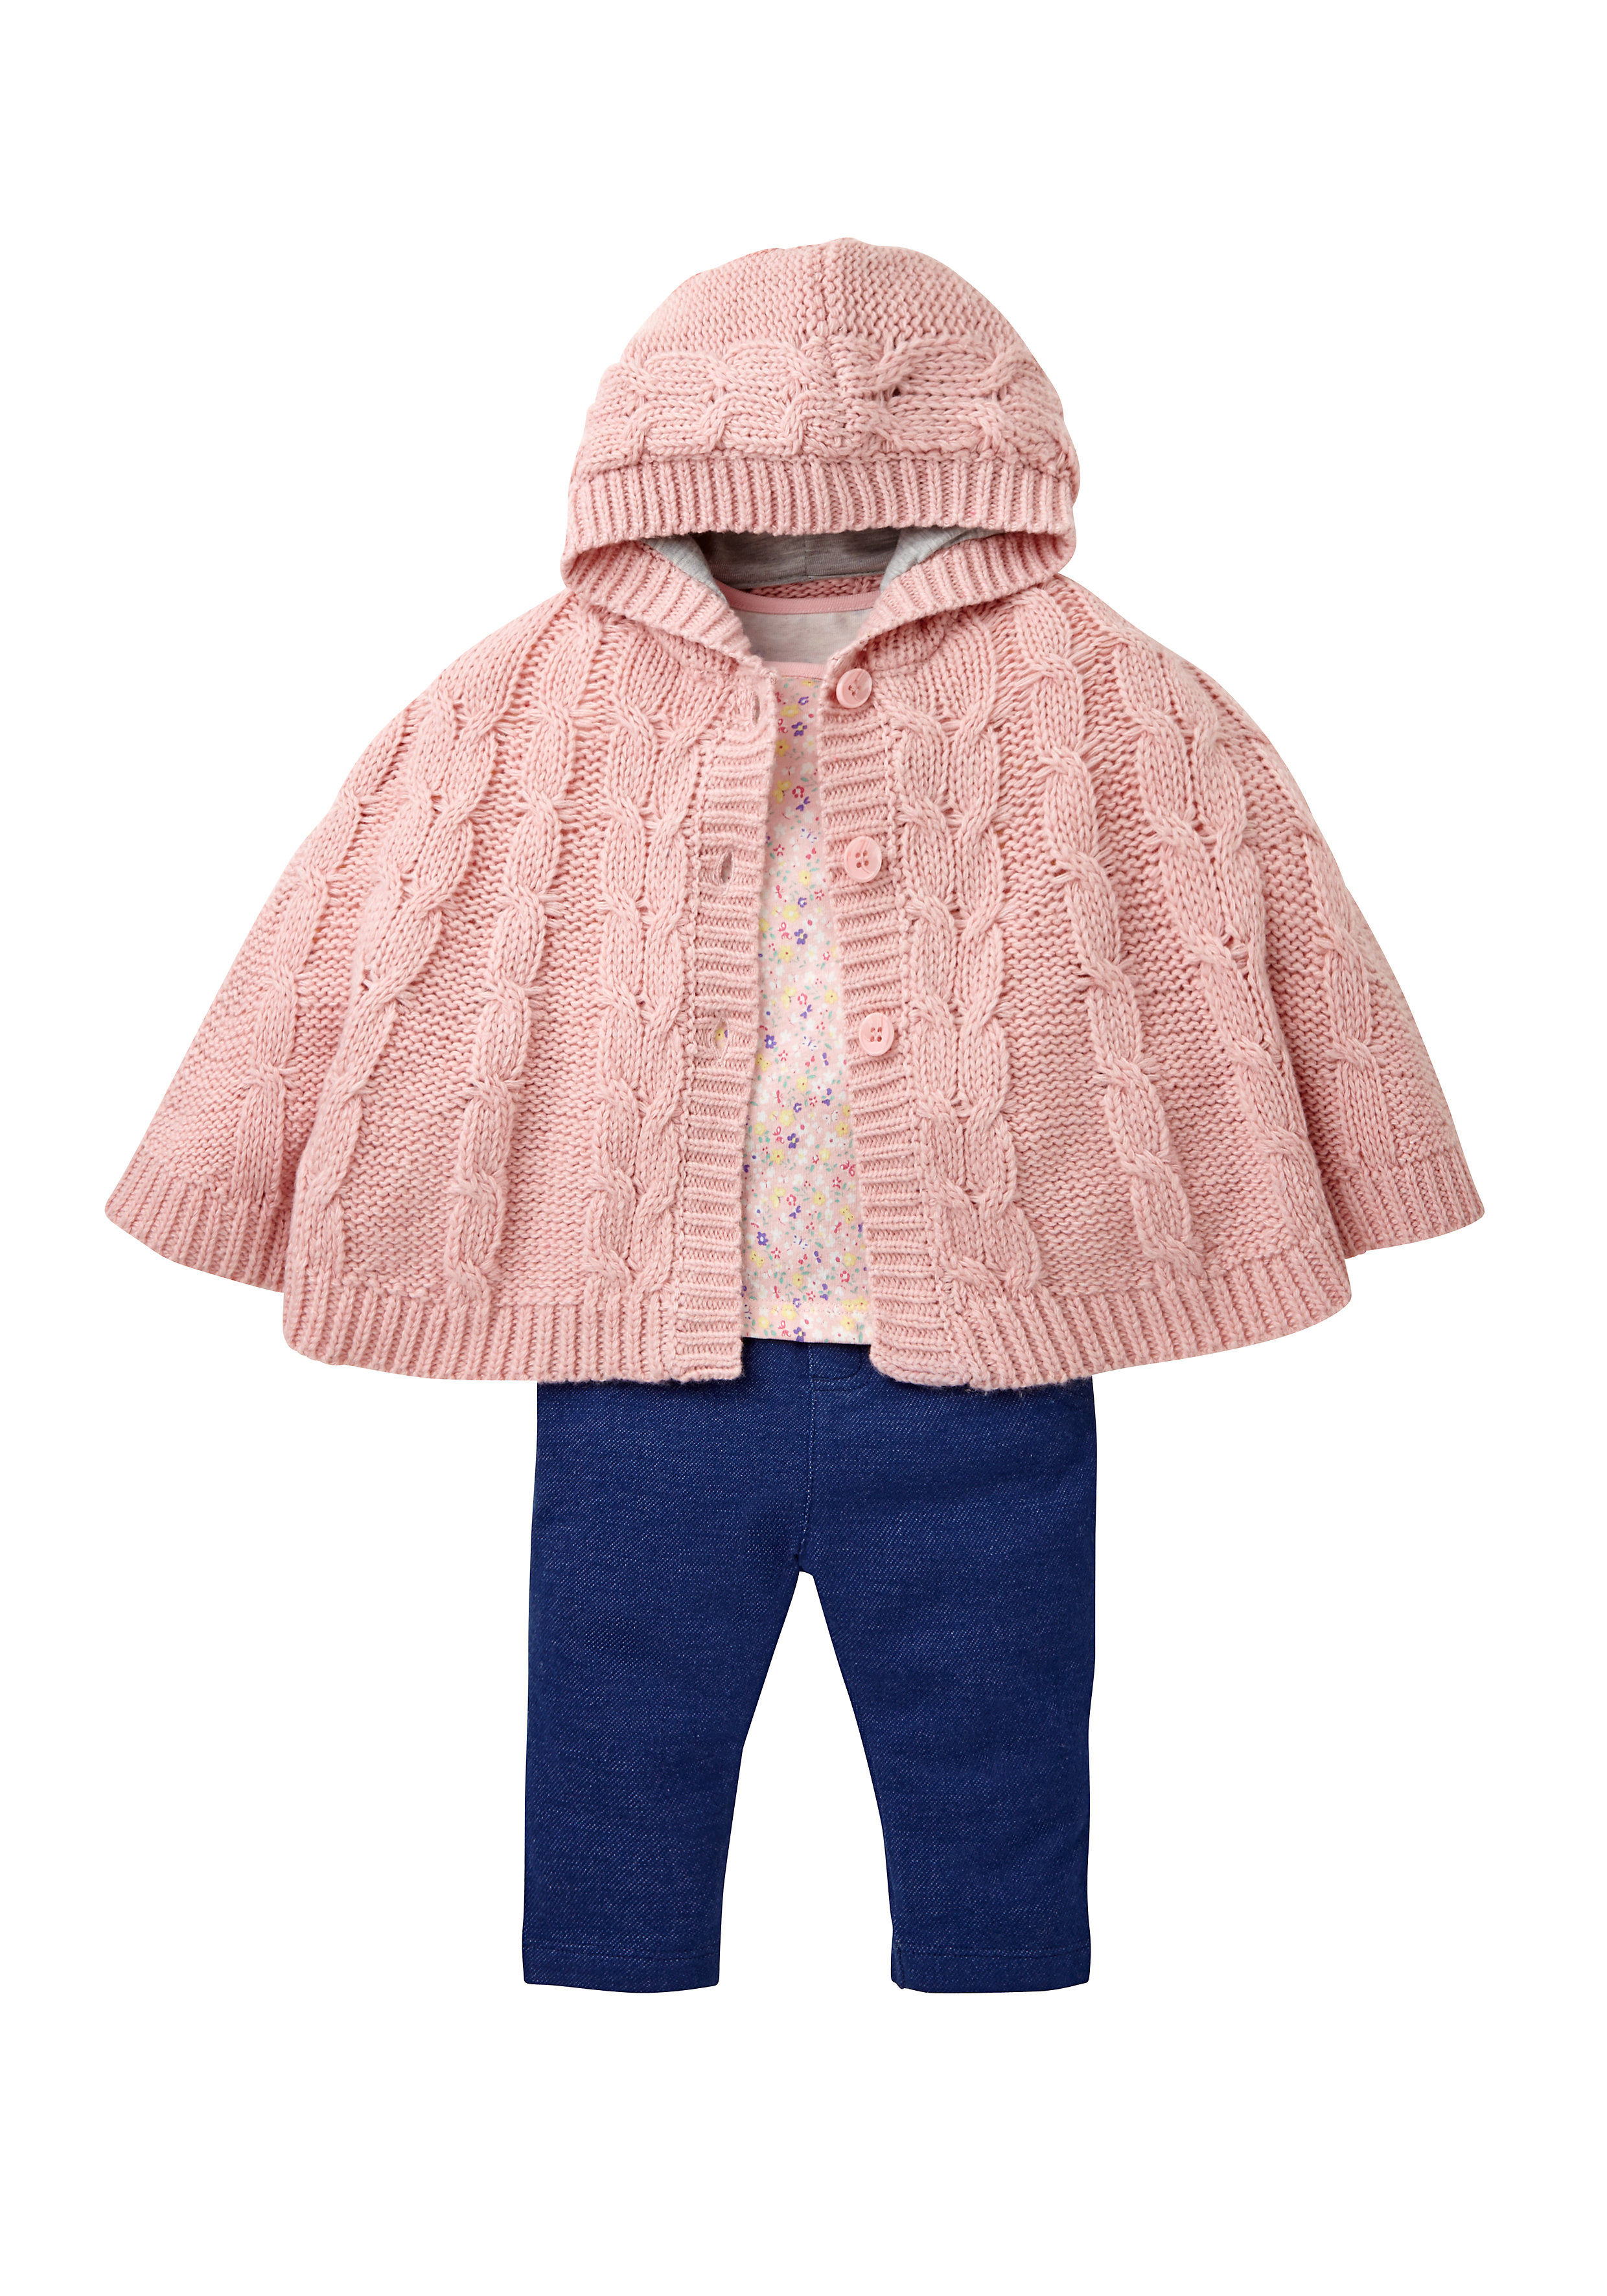 Mothercare | Girls Jeggings, Floral Top And Knitted Cape Set - Multicolor